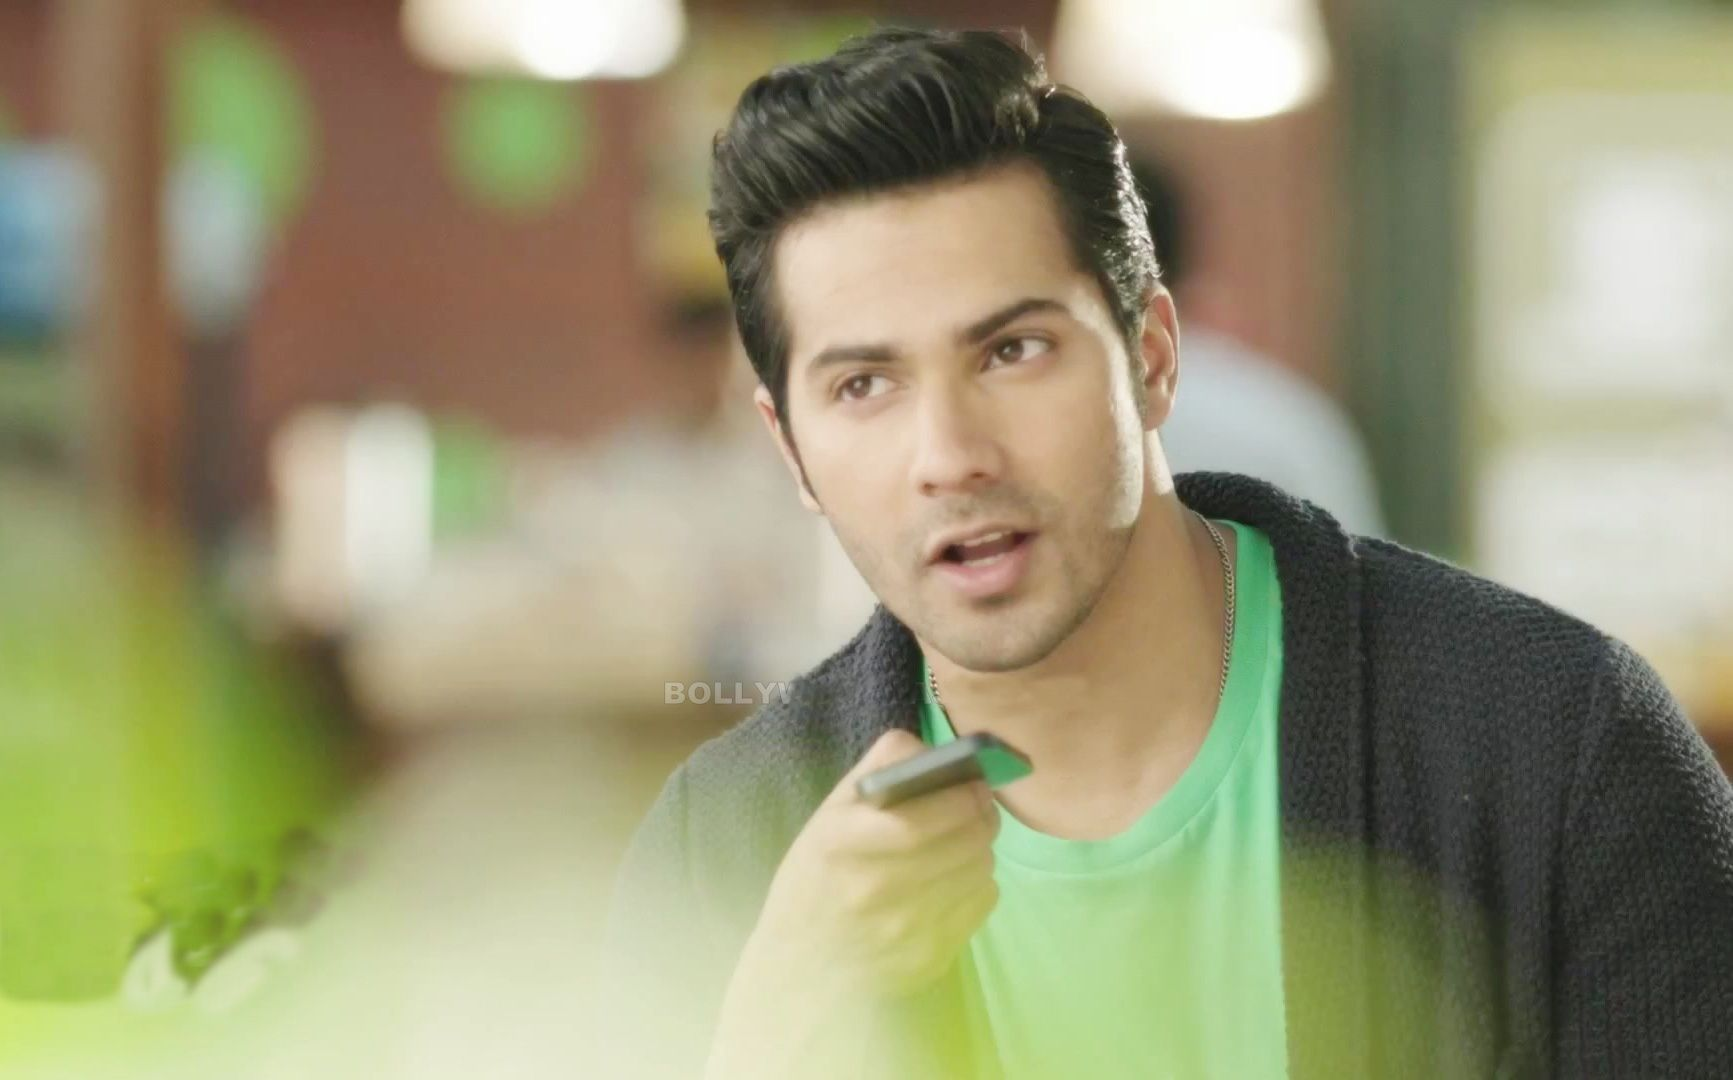 New Latest Photos Of Varun Dhawan Hd Wallpapers Images Free 1280960